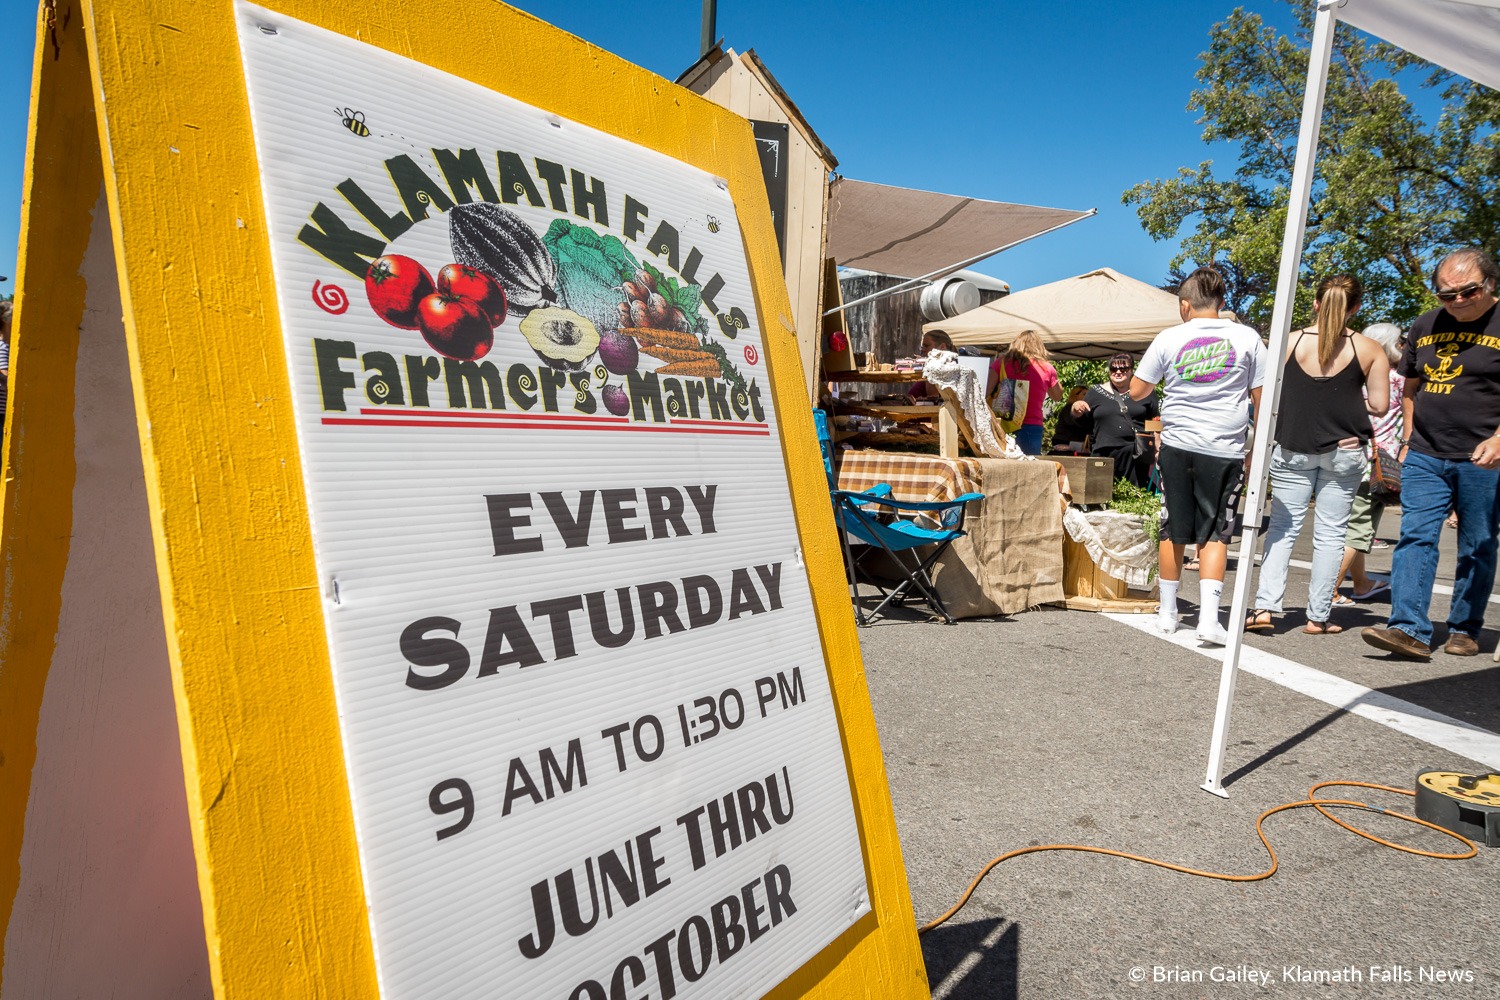 The Klamath Falls Farmers' Market - Every Saturday 9:00am to 1:30pm, June through October.